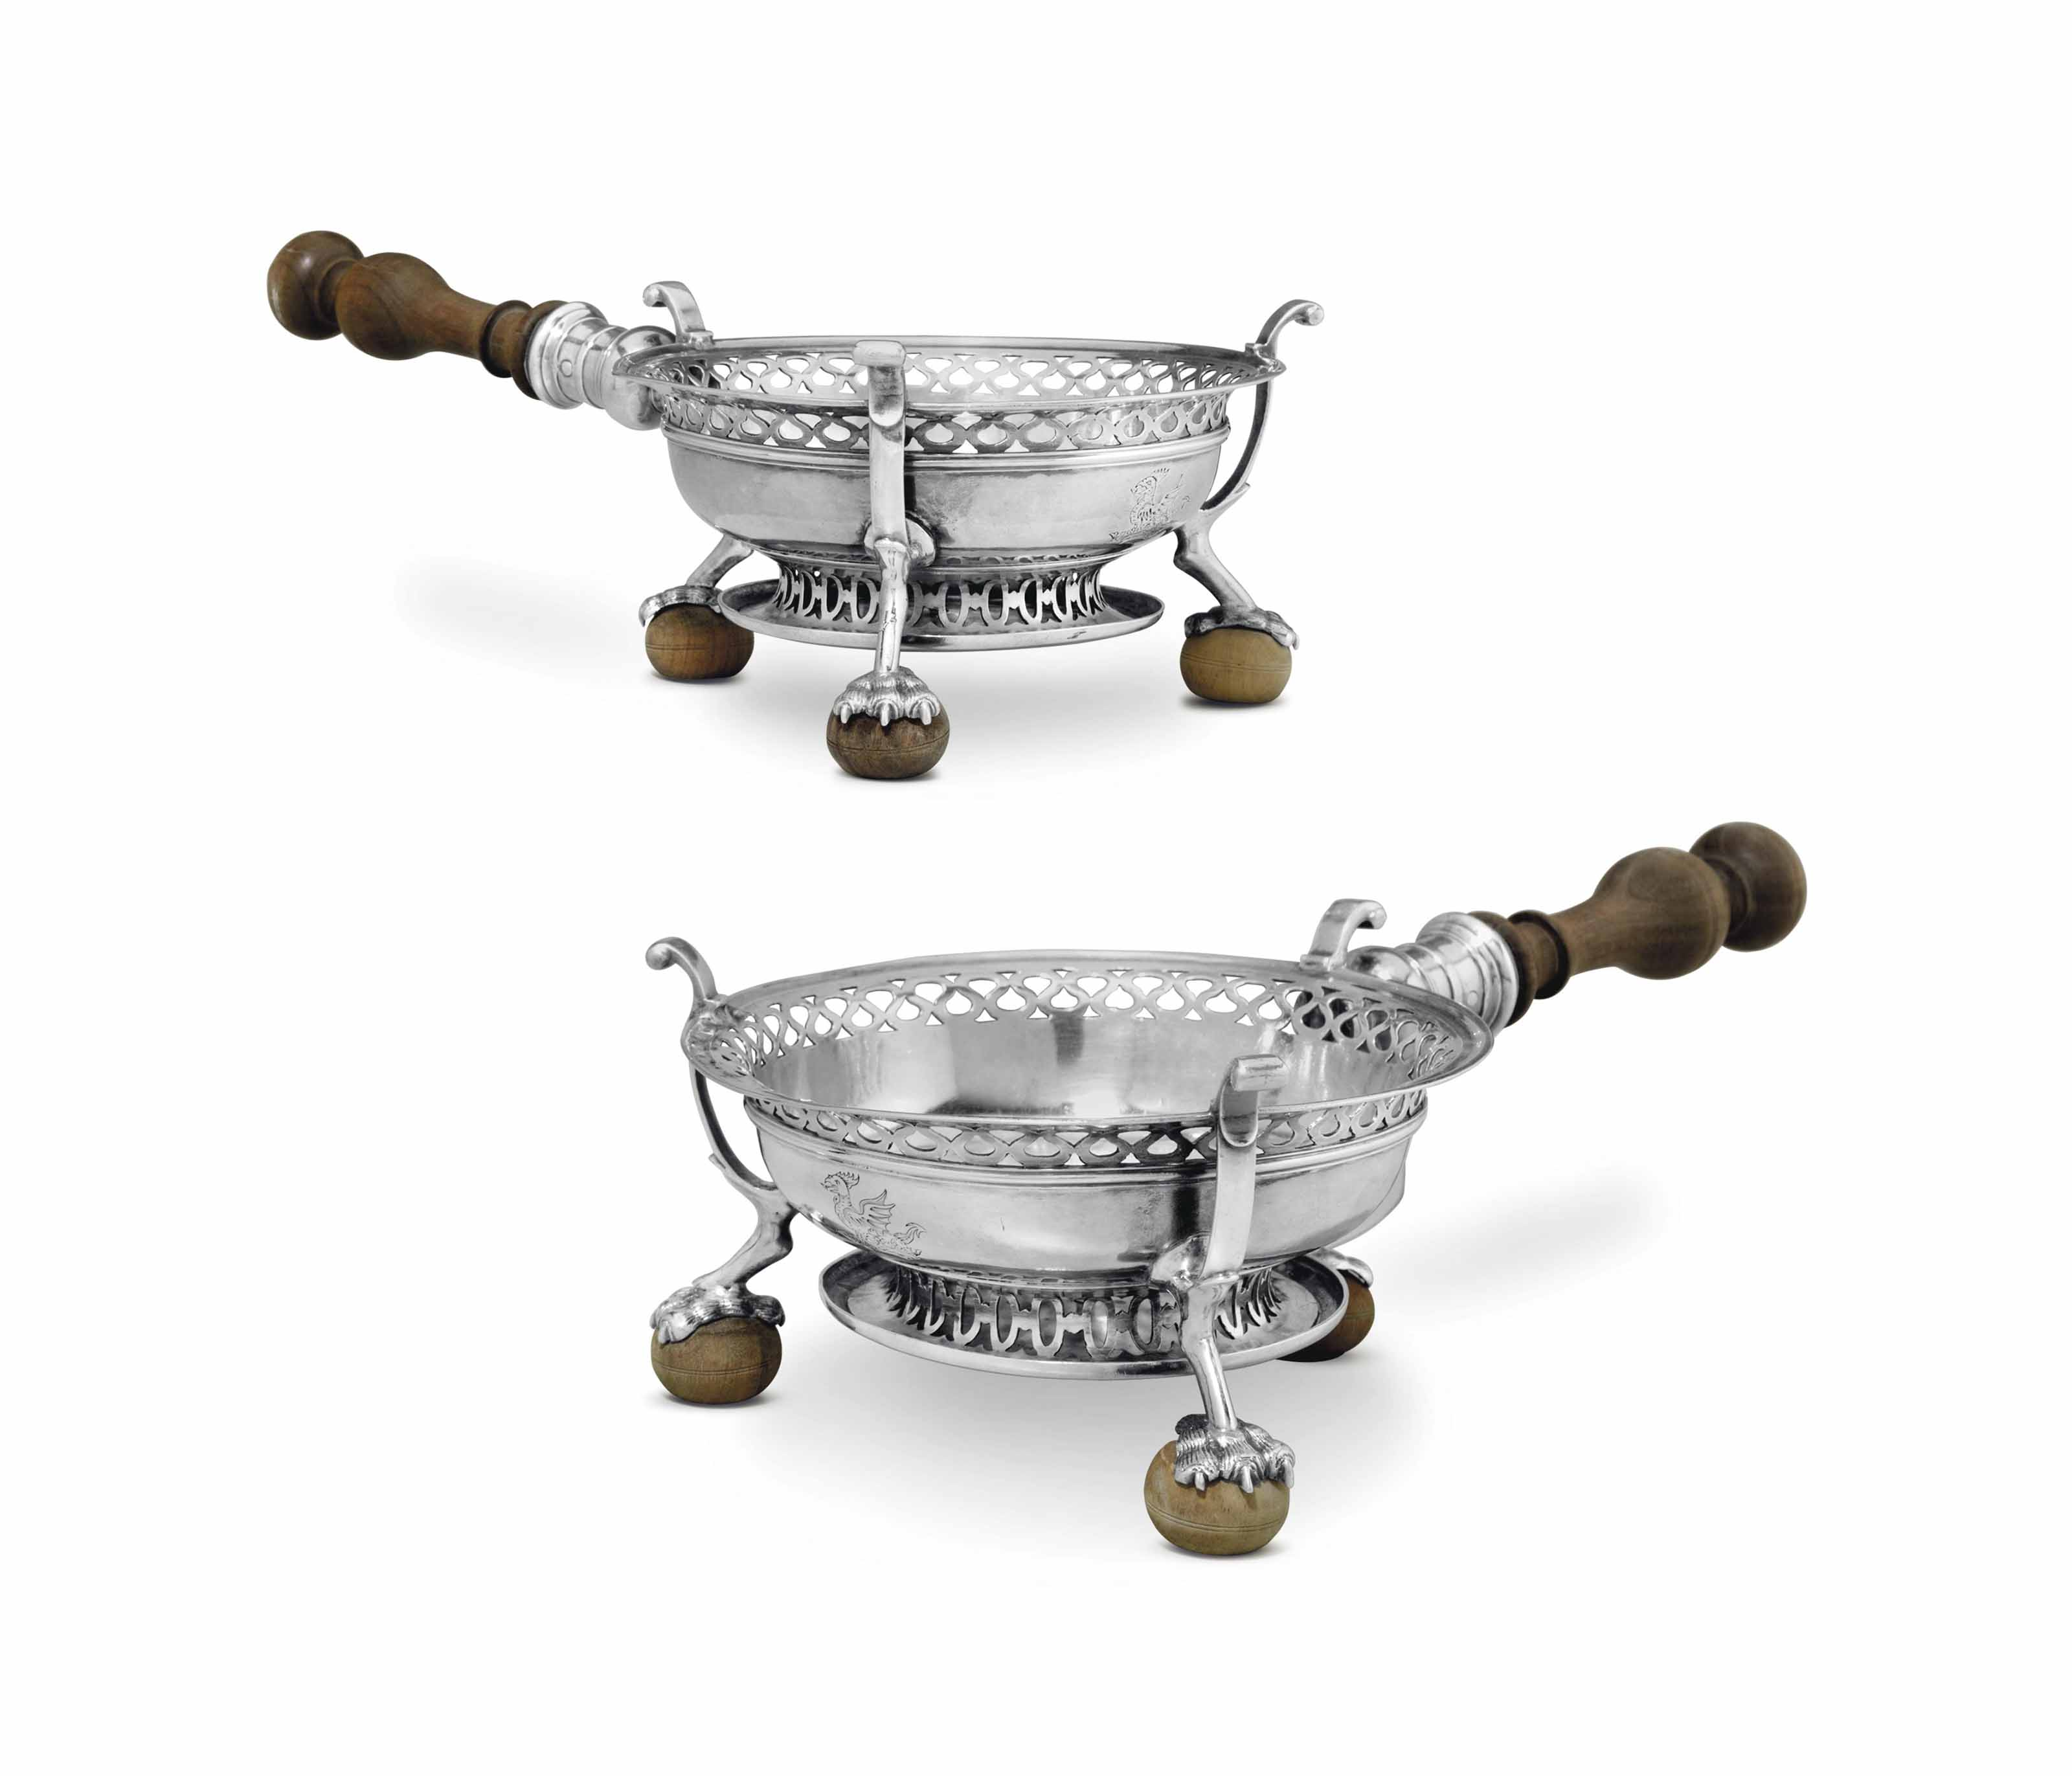 A FINE AND RARE PAIR OF SILVER CHAFING DISHES